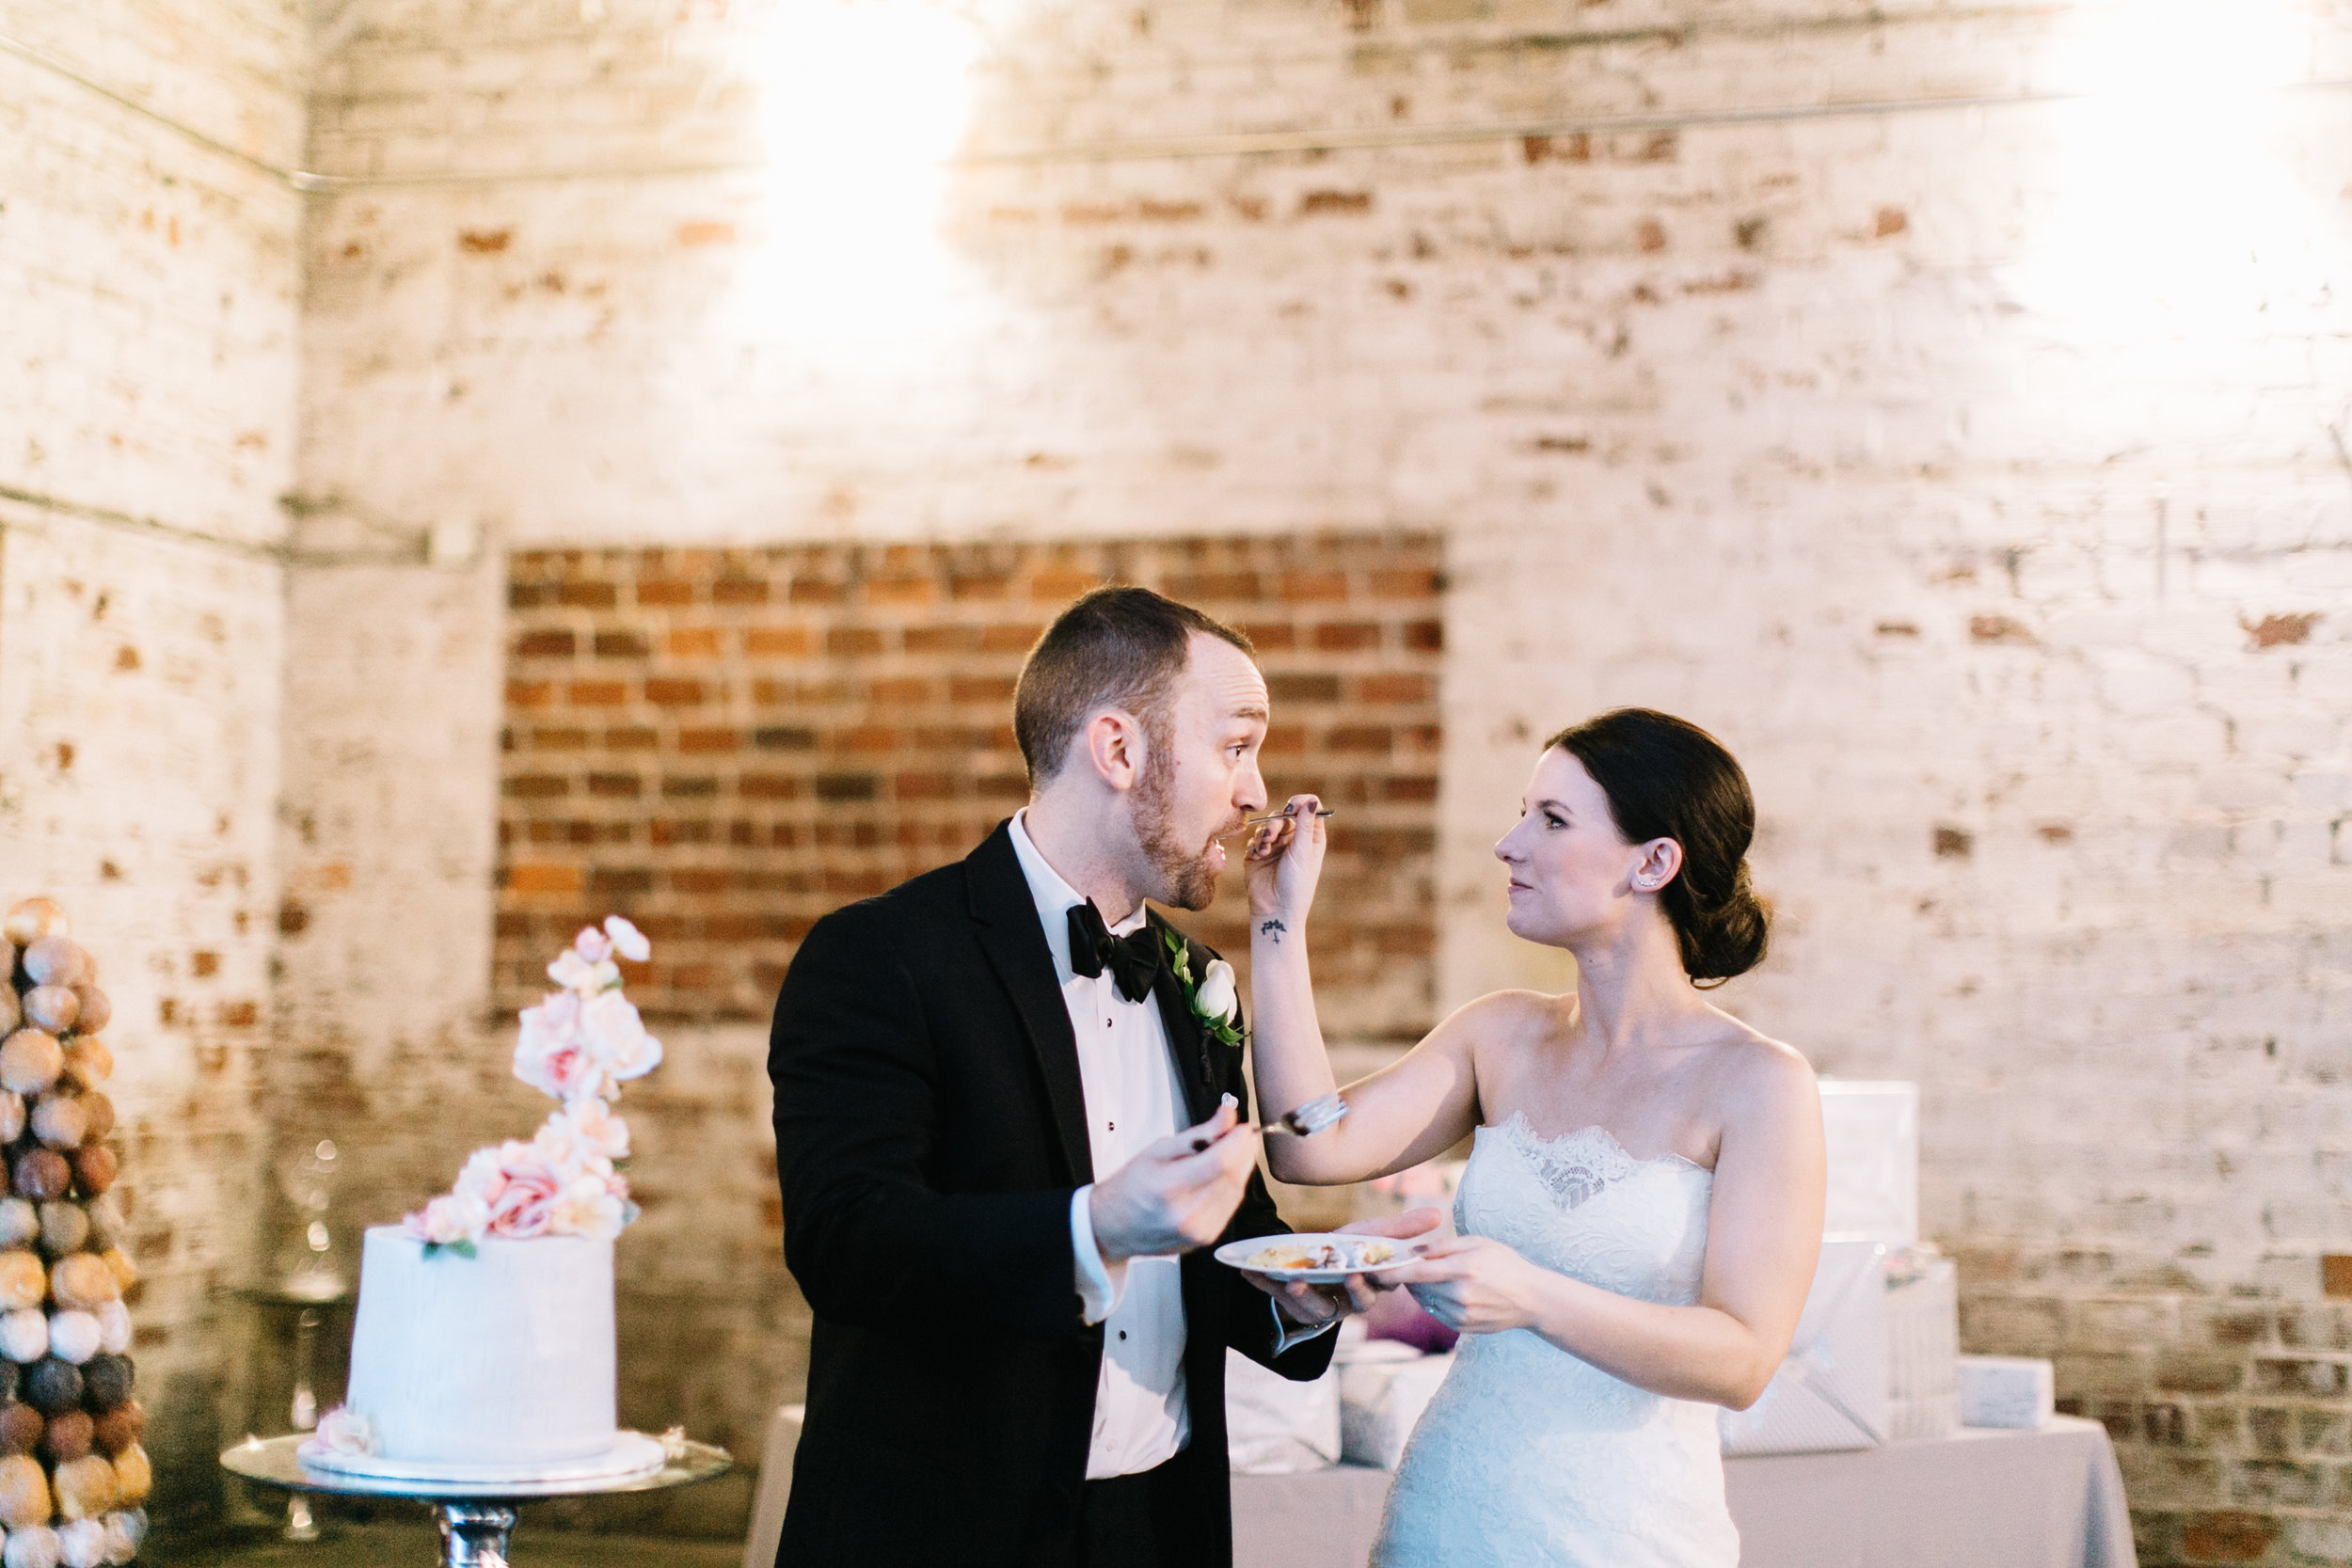 Tampa Industrial wedding at the Rialto Theater_183.jpg